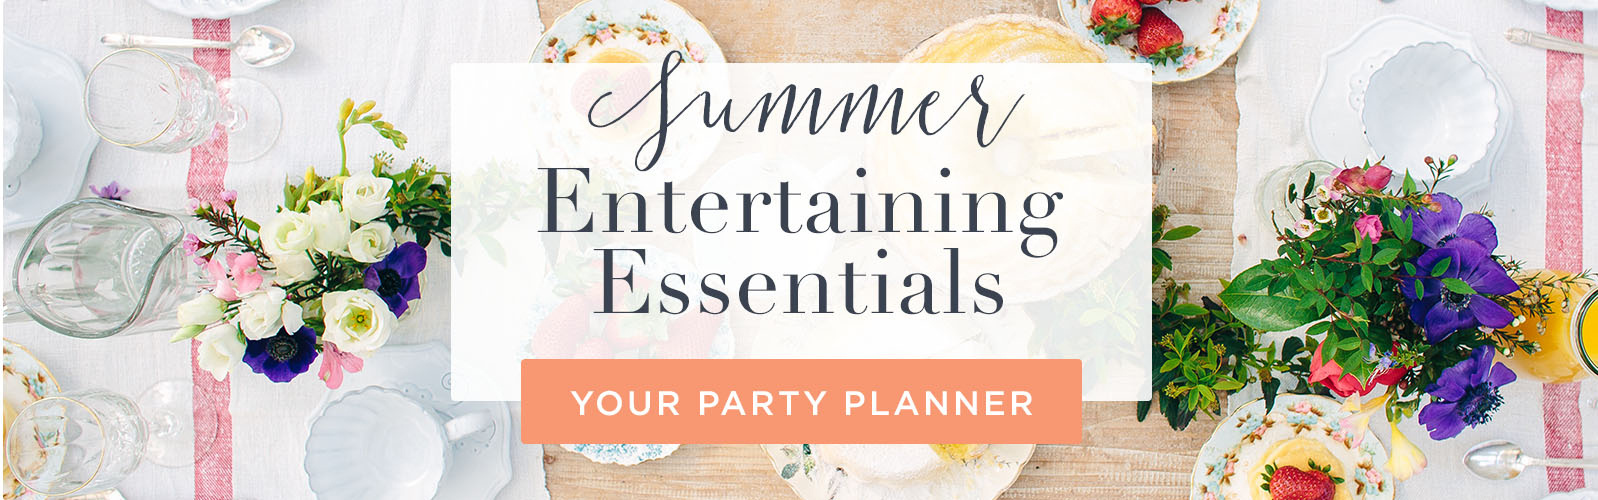 Summer Entertaining Essentials. YOUR PARTY PLANNER